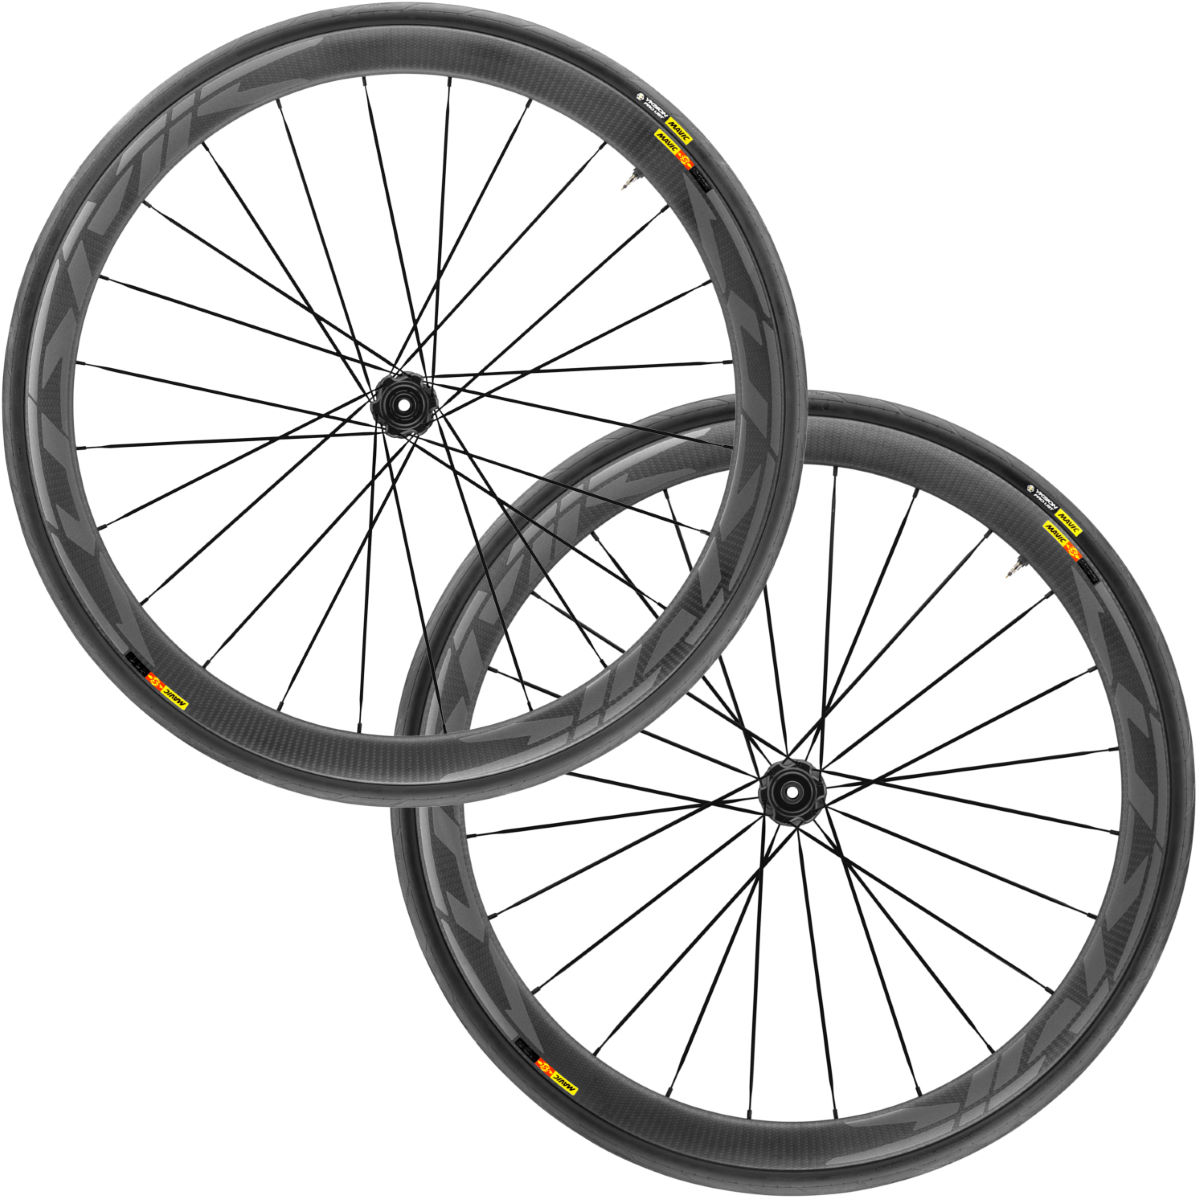 Wheel set Mavic Cosmic Pro Carbon SL Disc (UST) - Competition wheels